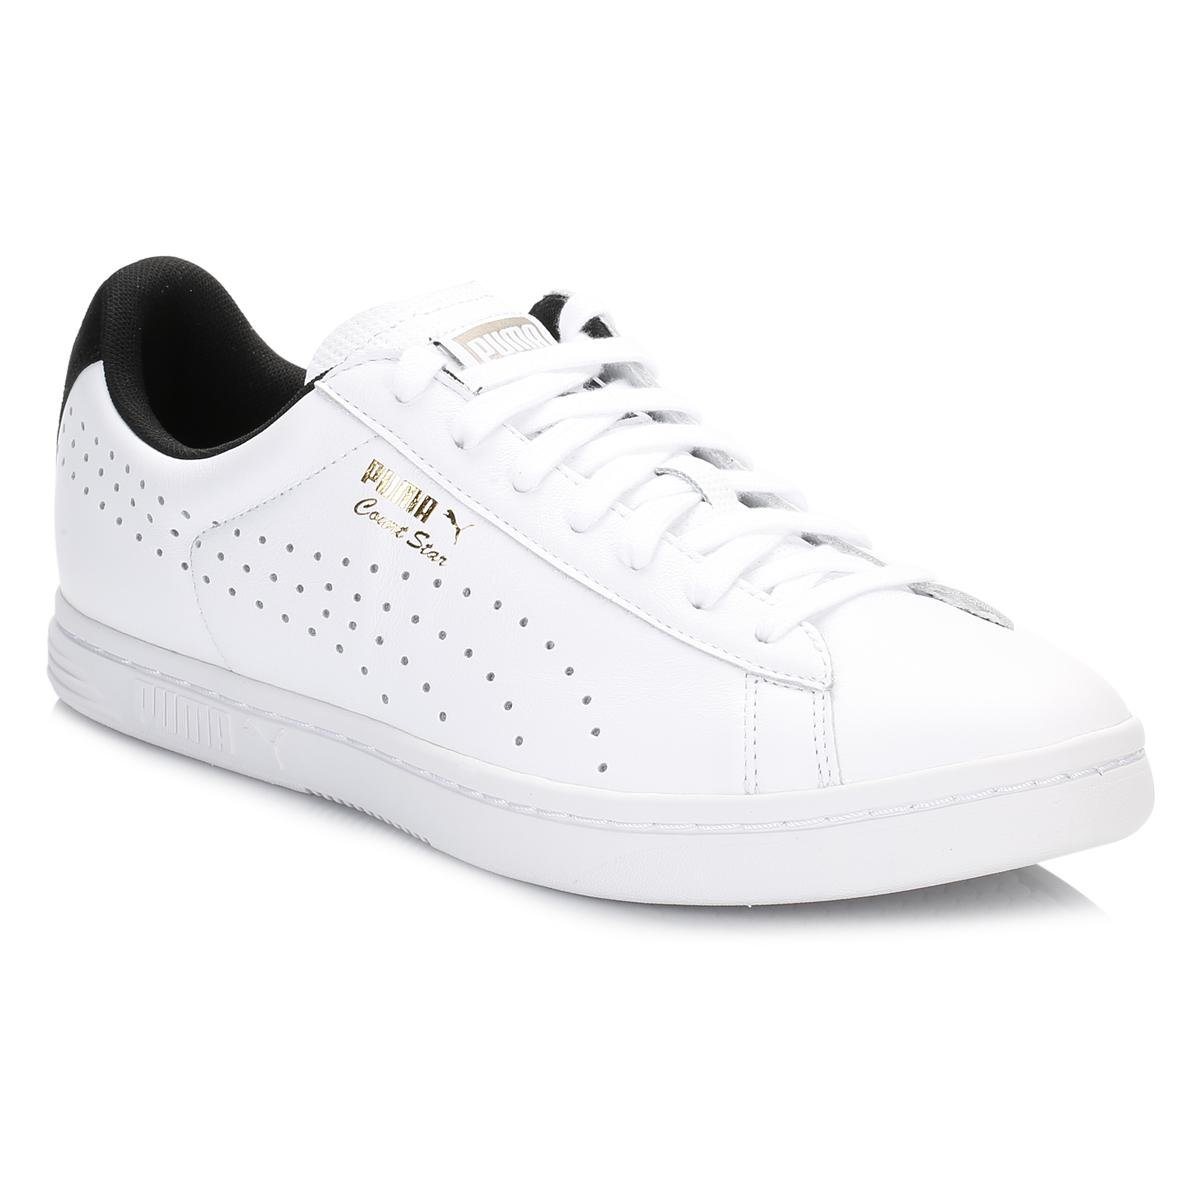 TG.40 Puma Court Star Nm Sneaker